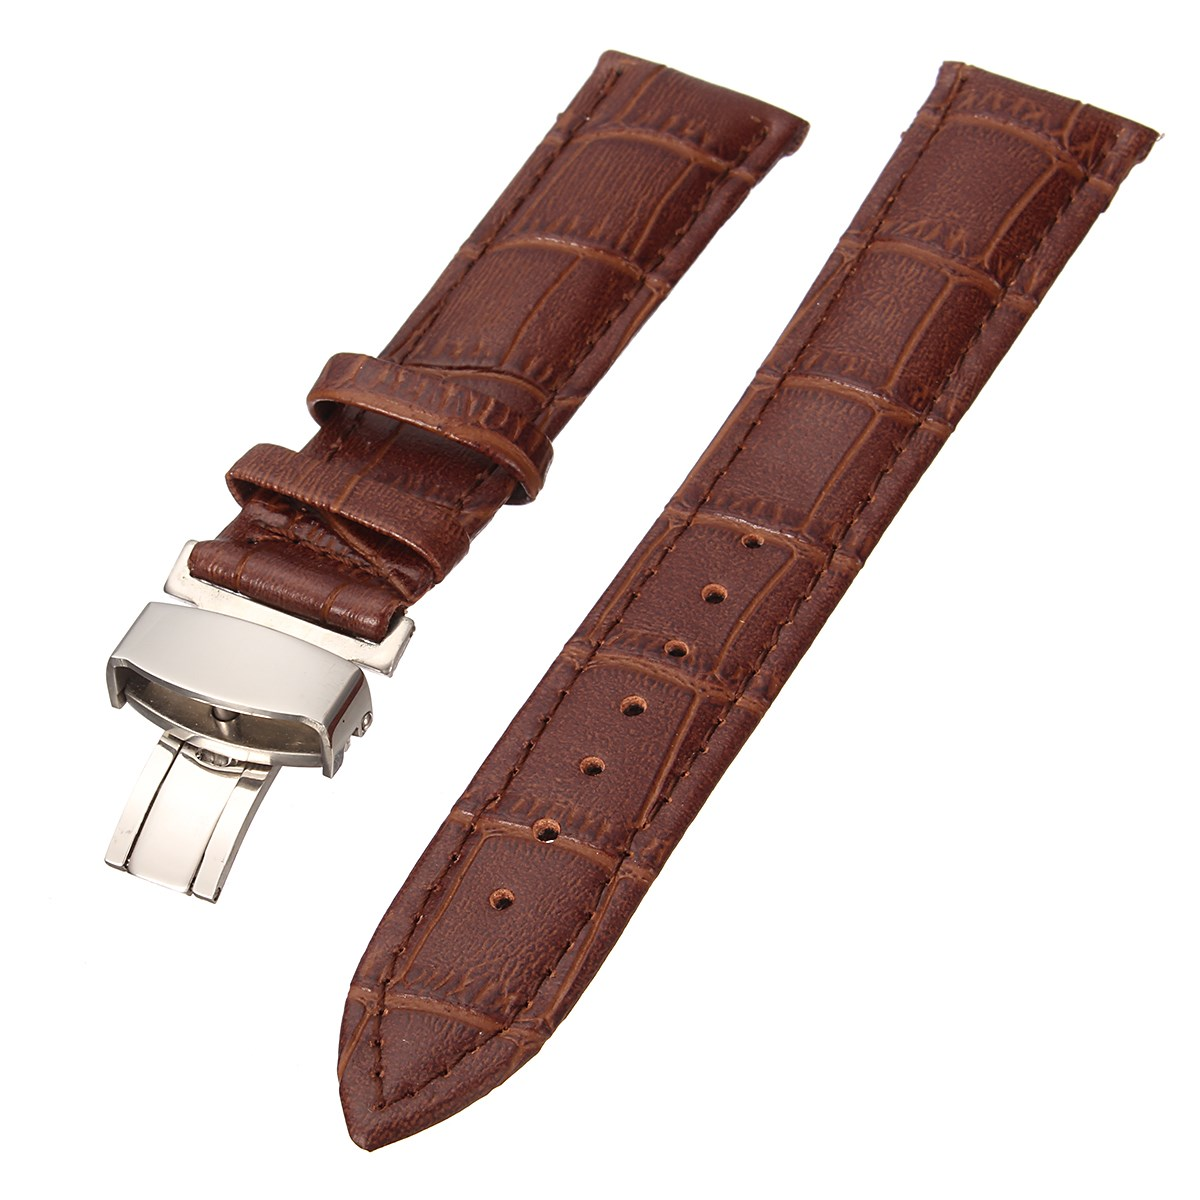 Genuine Leather Watchband Wrist Strap Croco Bracelet With Butterfly Buckle For Watch Accessories 18/22mm Hot 3Color 2017 the golden butterfly leather leather watchband leisurely bracelet watch with 20mm common men and women